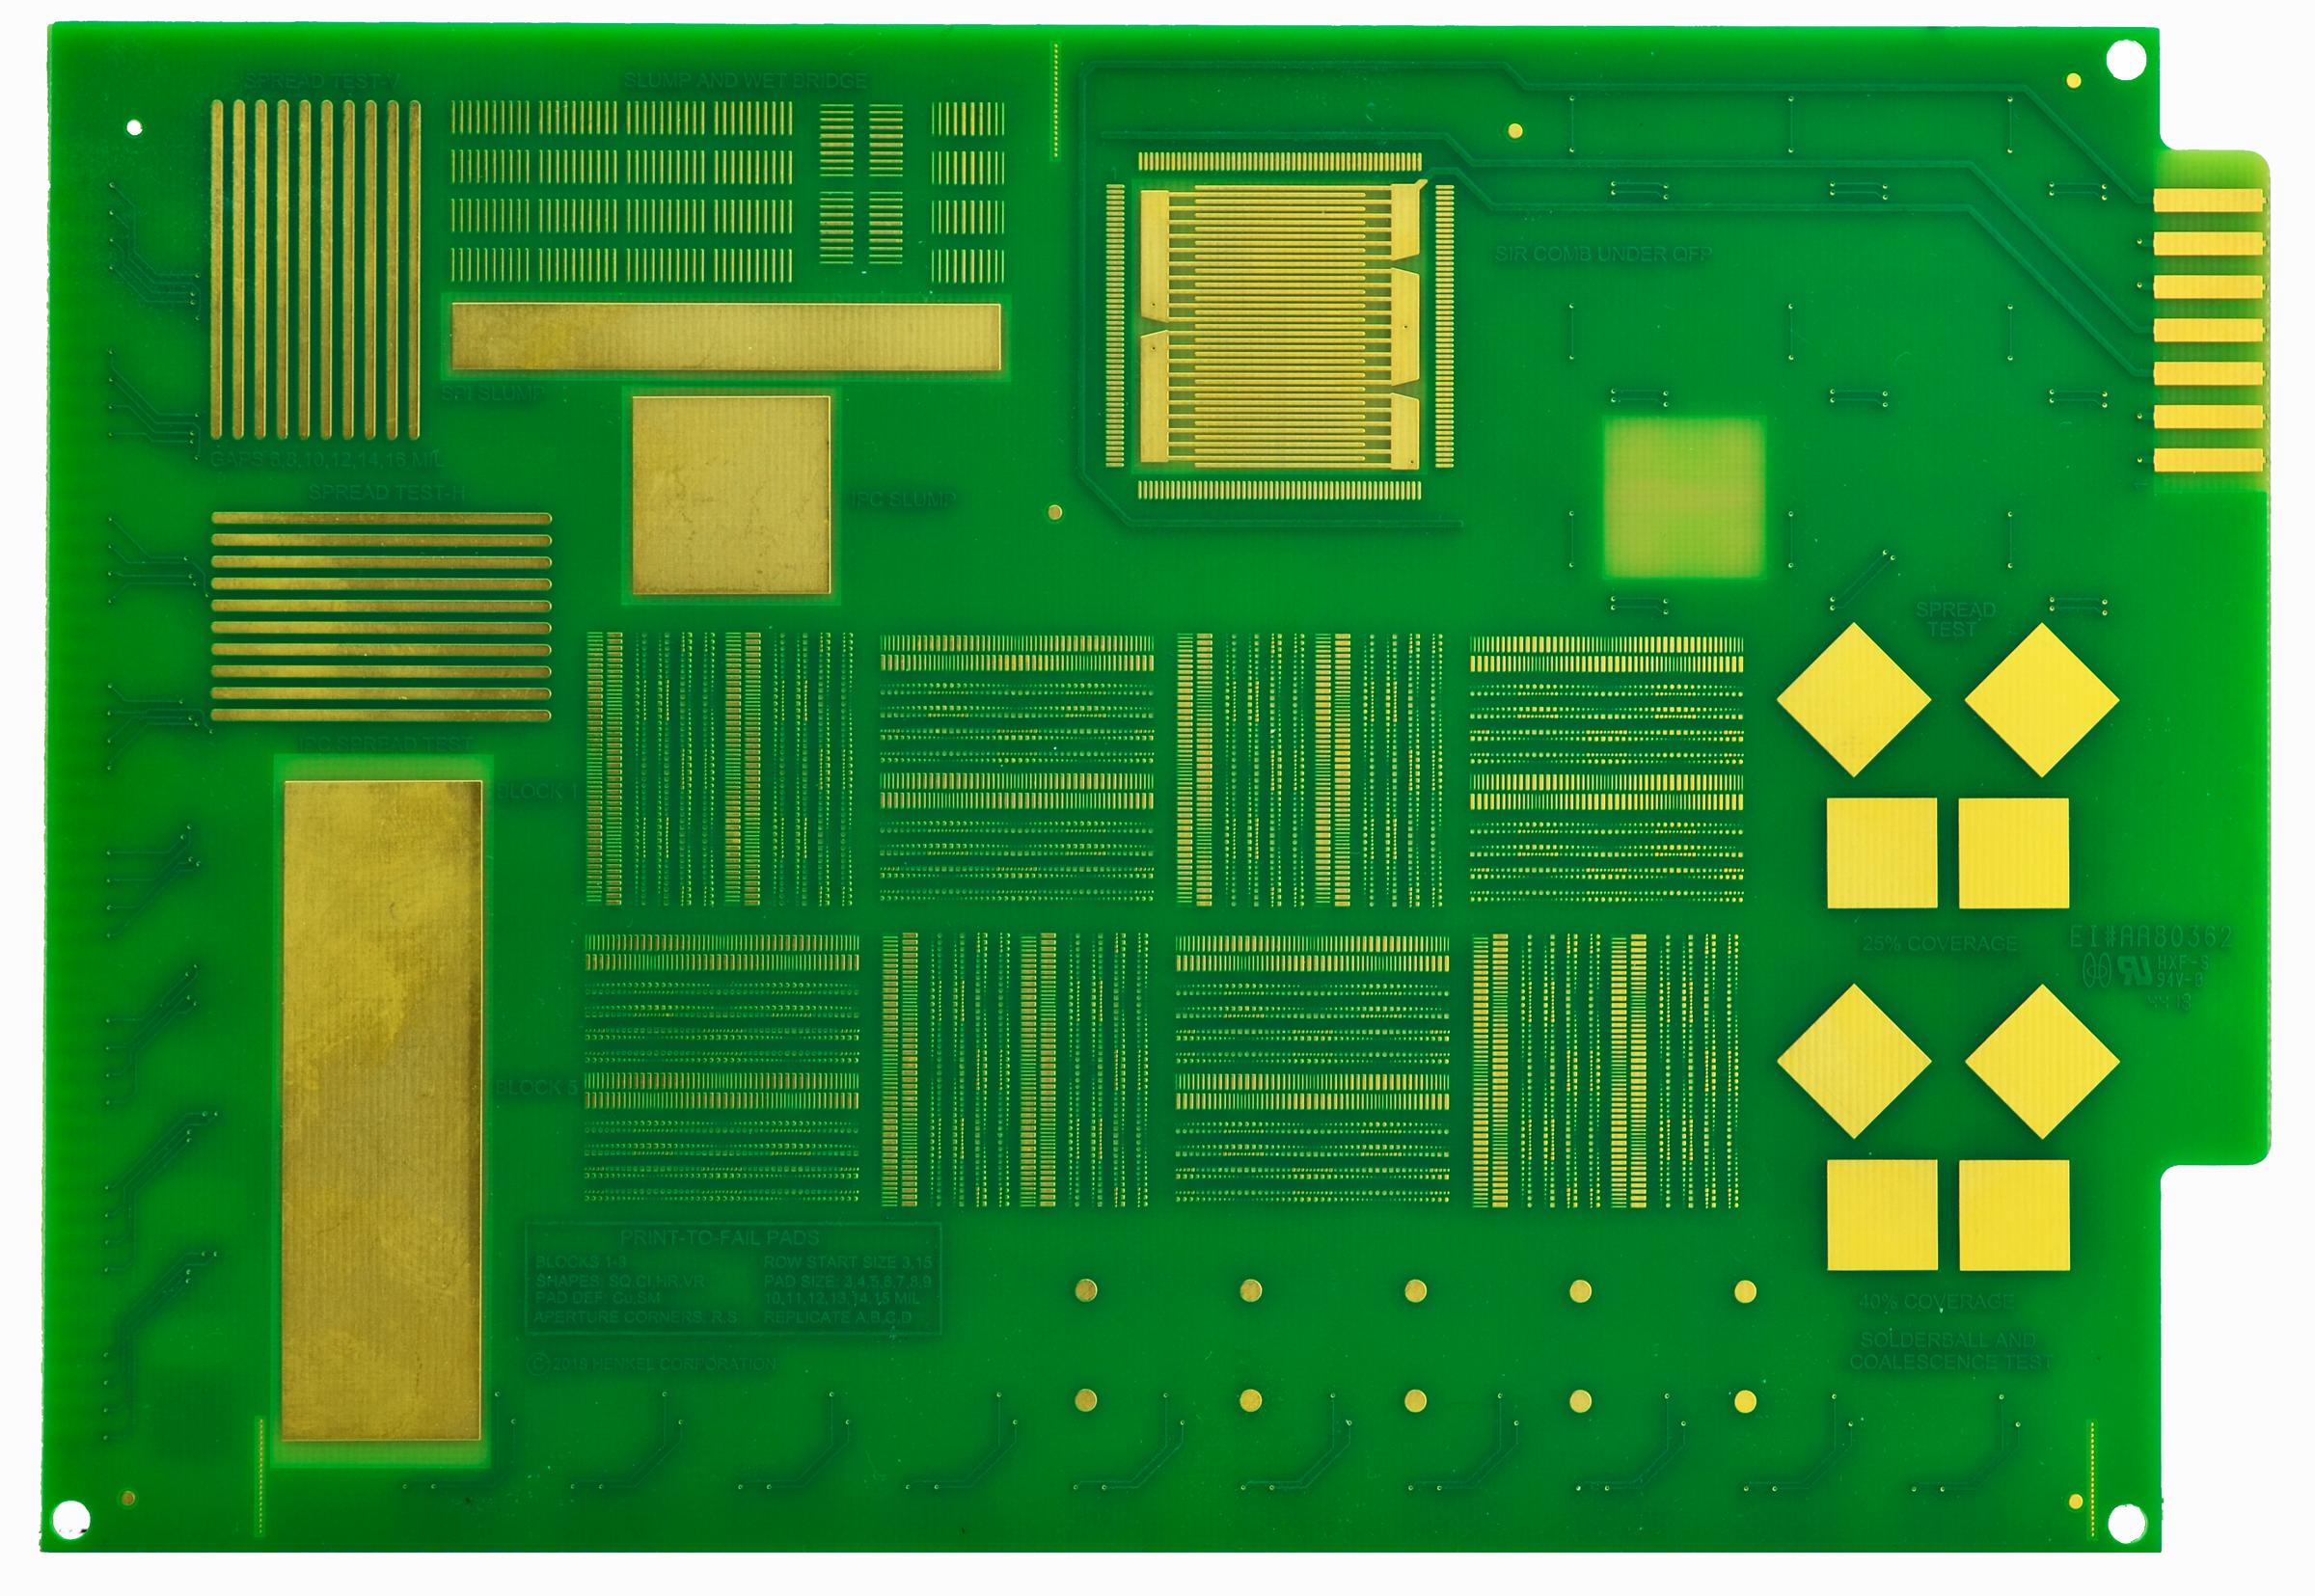 SMTA Solder Paste Test Vehicle for Miniaturized Surface Mount Technology